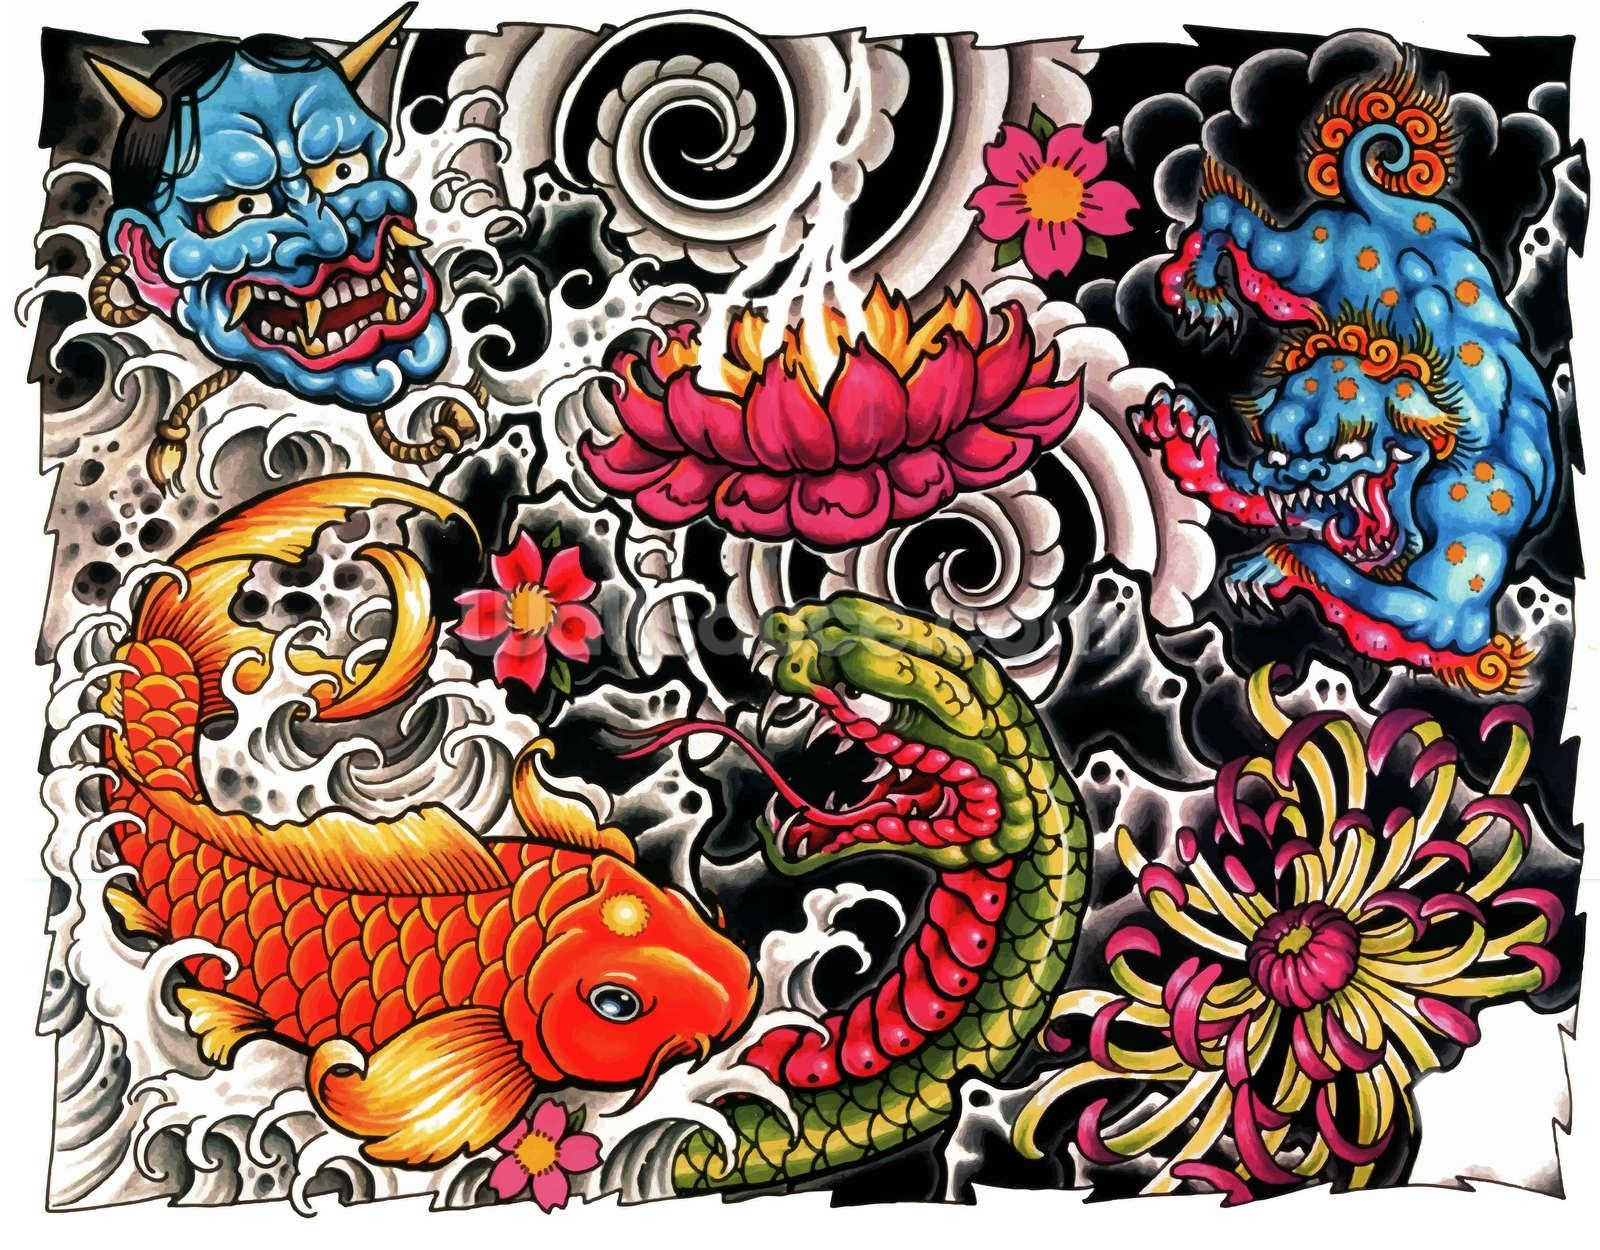 Tattoo Wallpaper Wall Mural | Wallsauce Usa Pertaining To Tattoo Wall Art (Image 17 of 20)